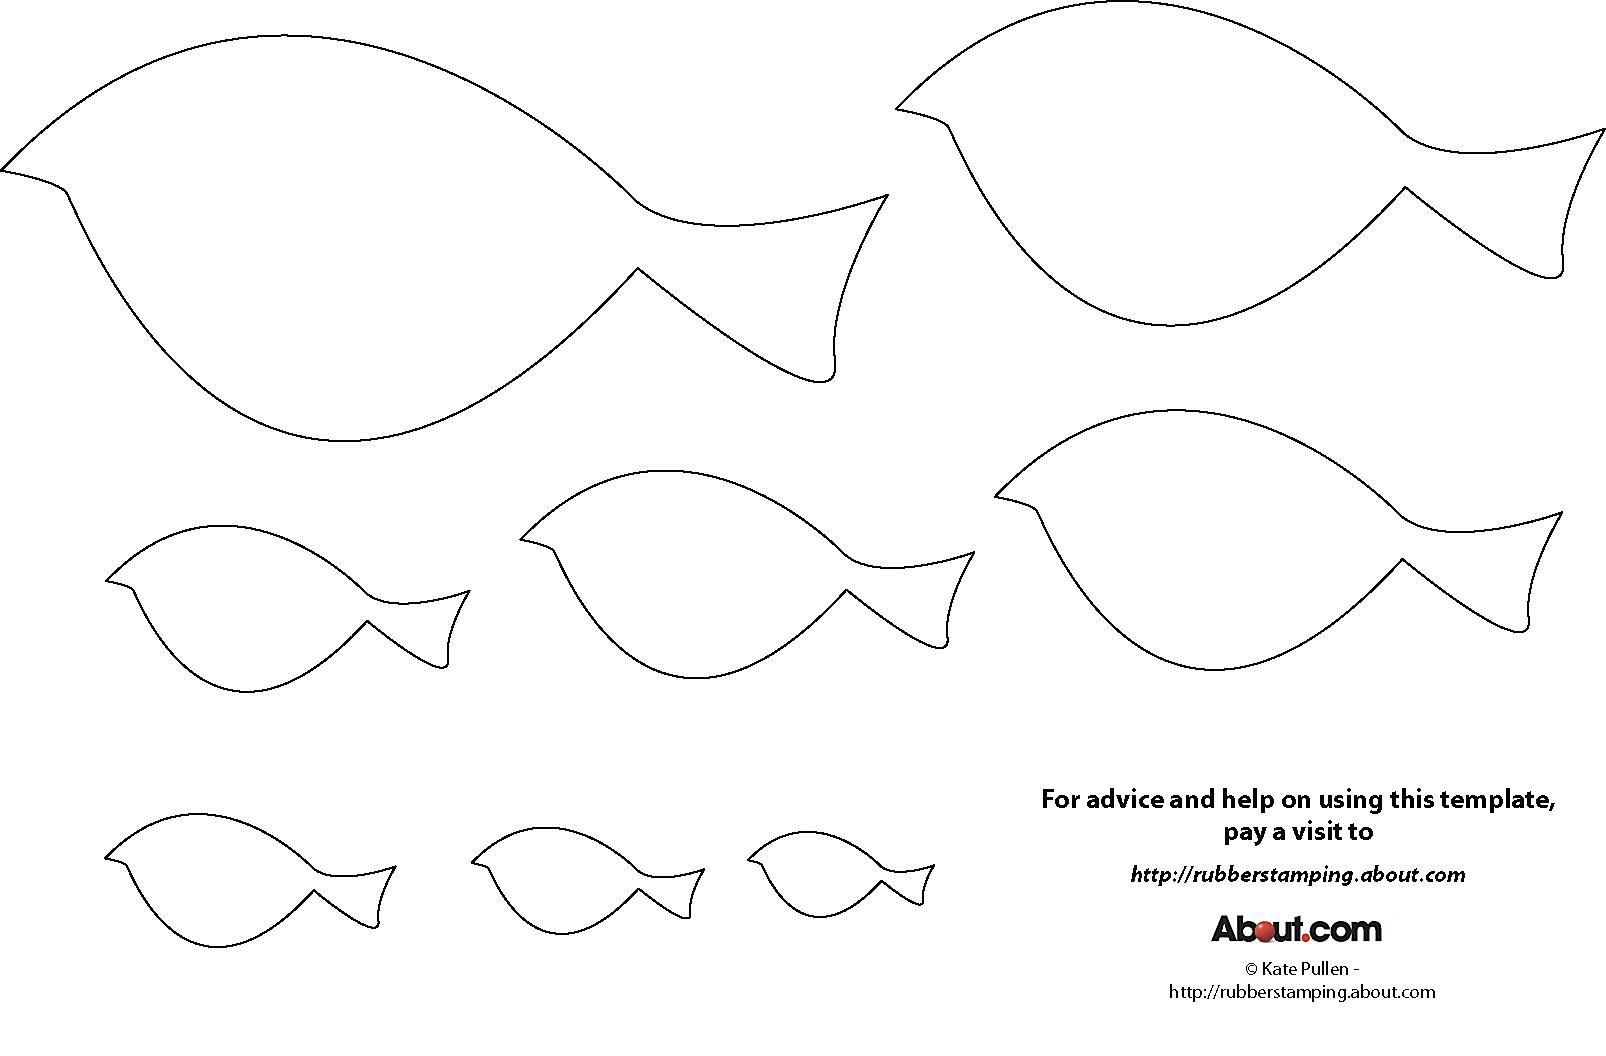 bird printable template birds outline clipart 10 free cliparts download images bird template printable